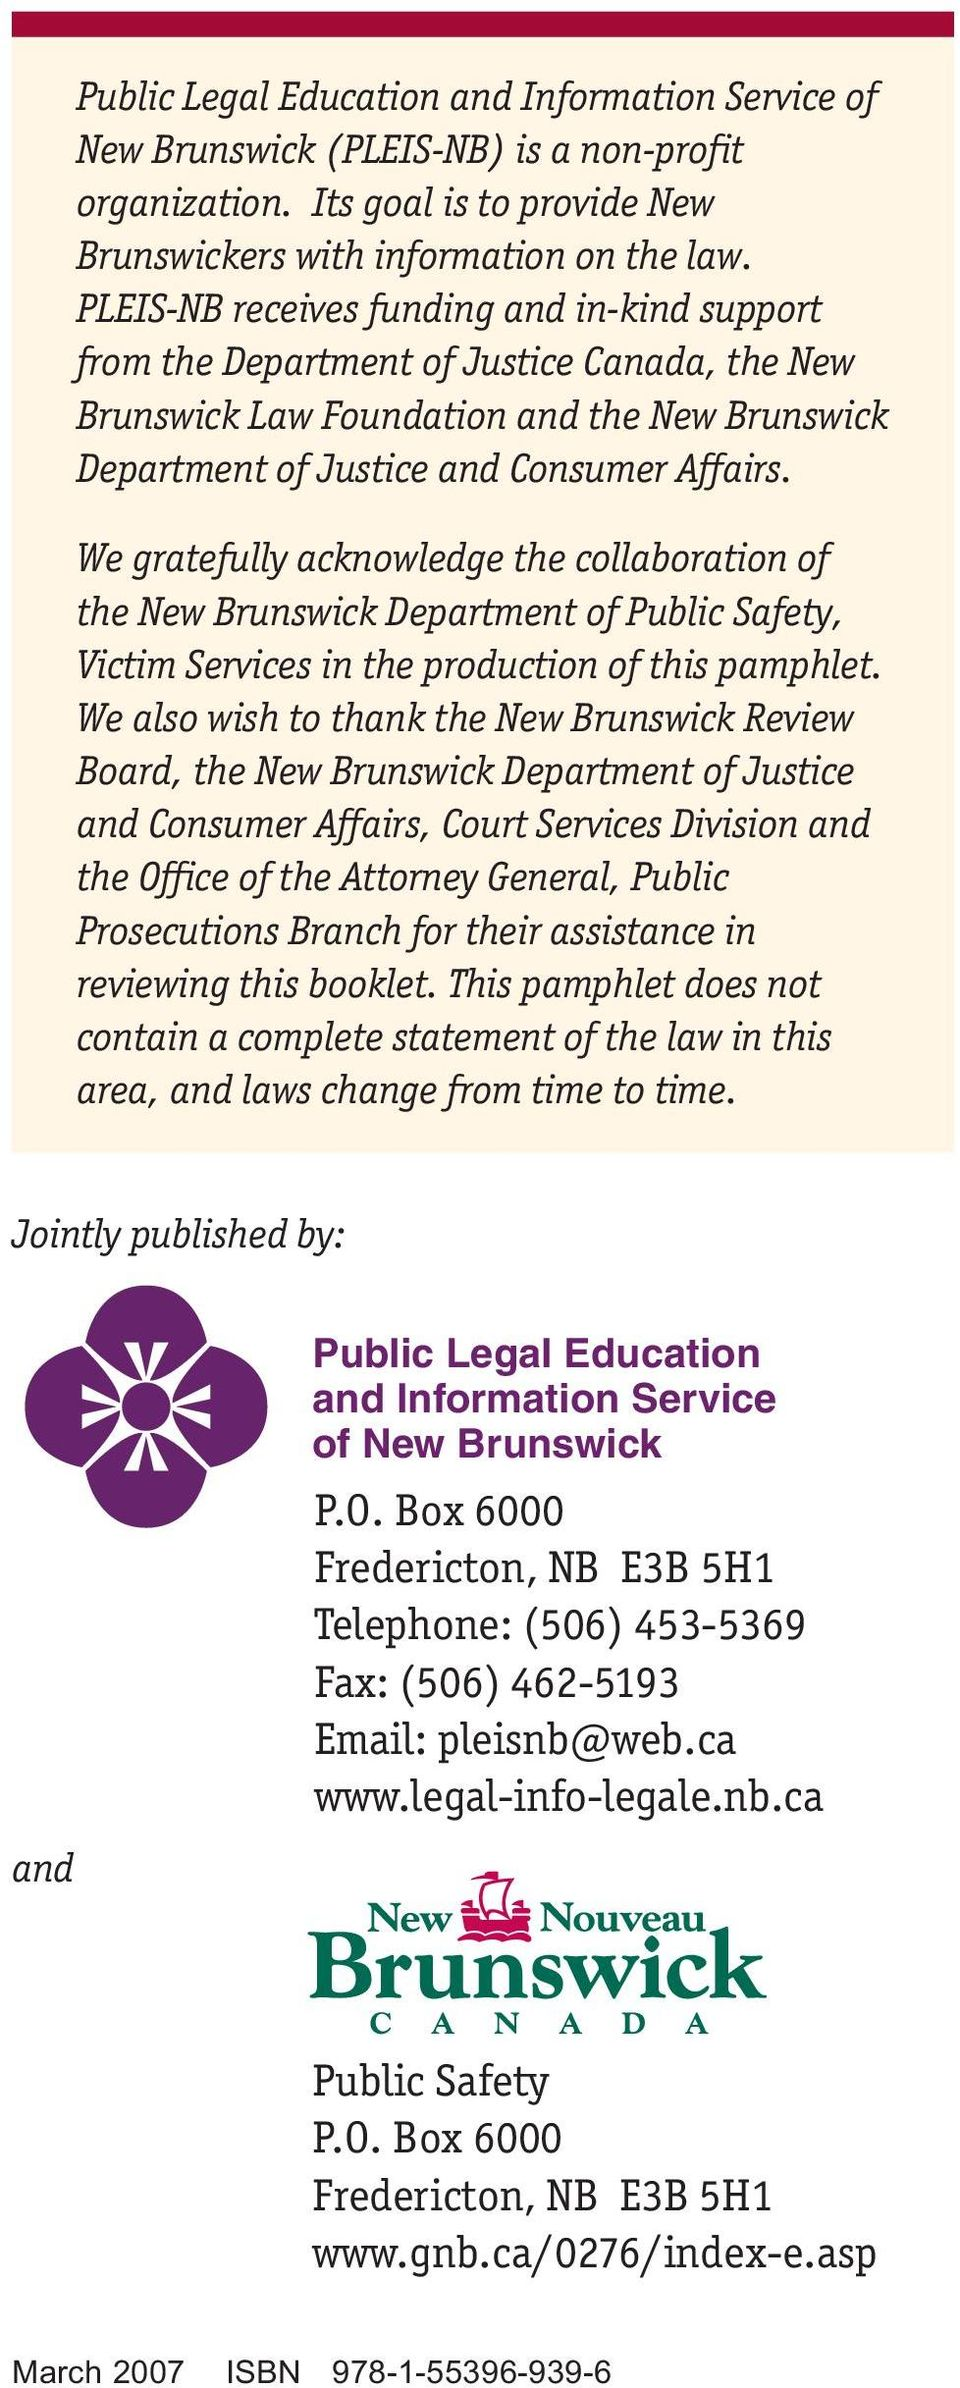 We gratefully acknowledge the collaboration of the New Brunswick Department of Public Safety, Victim Services in the production of this pamphlet.